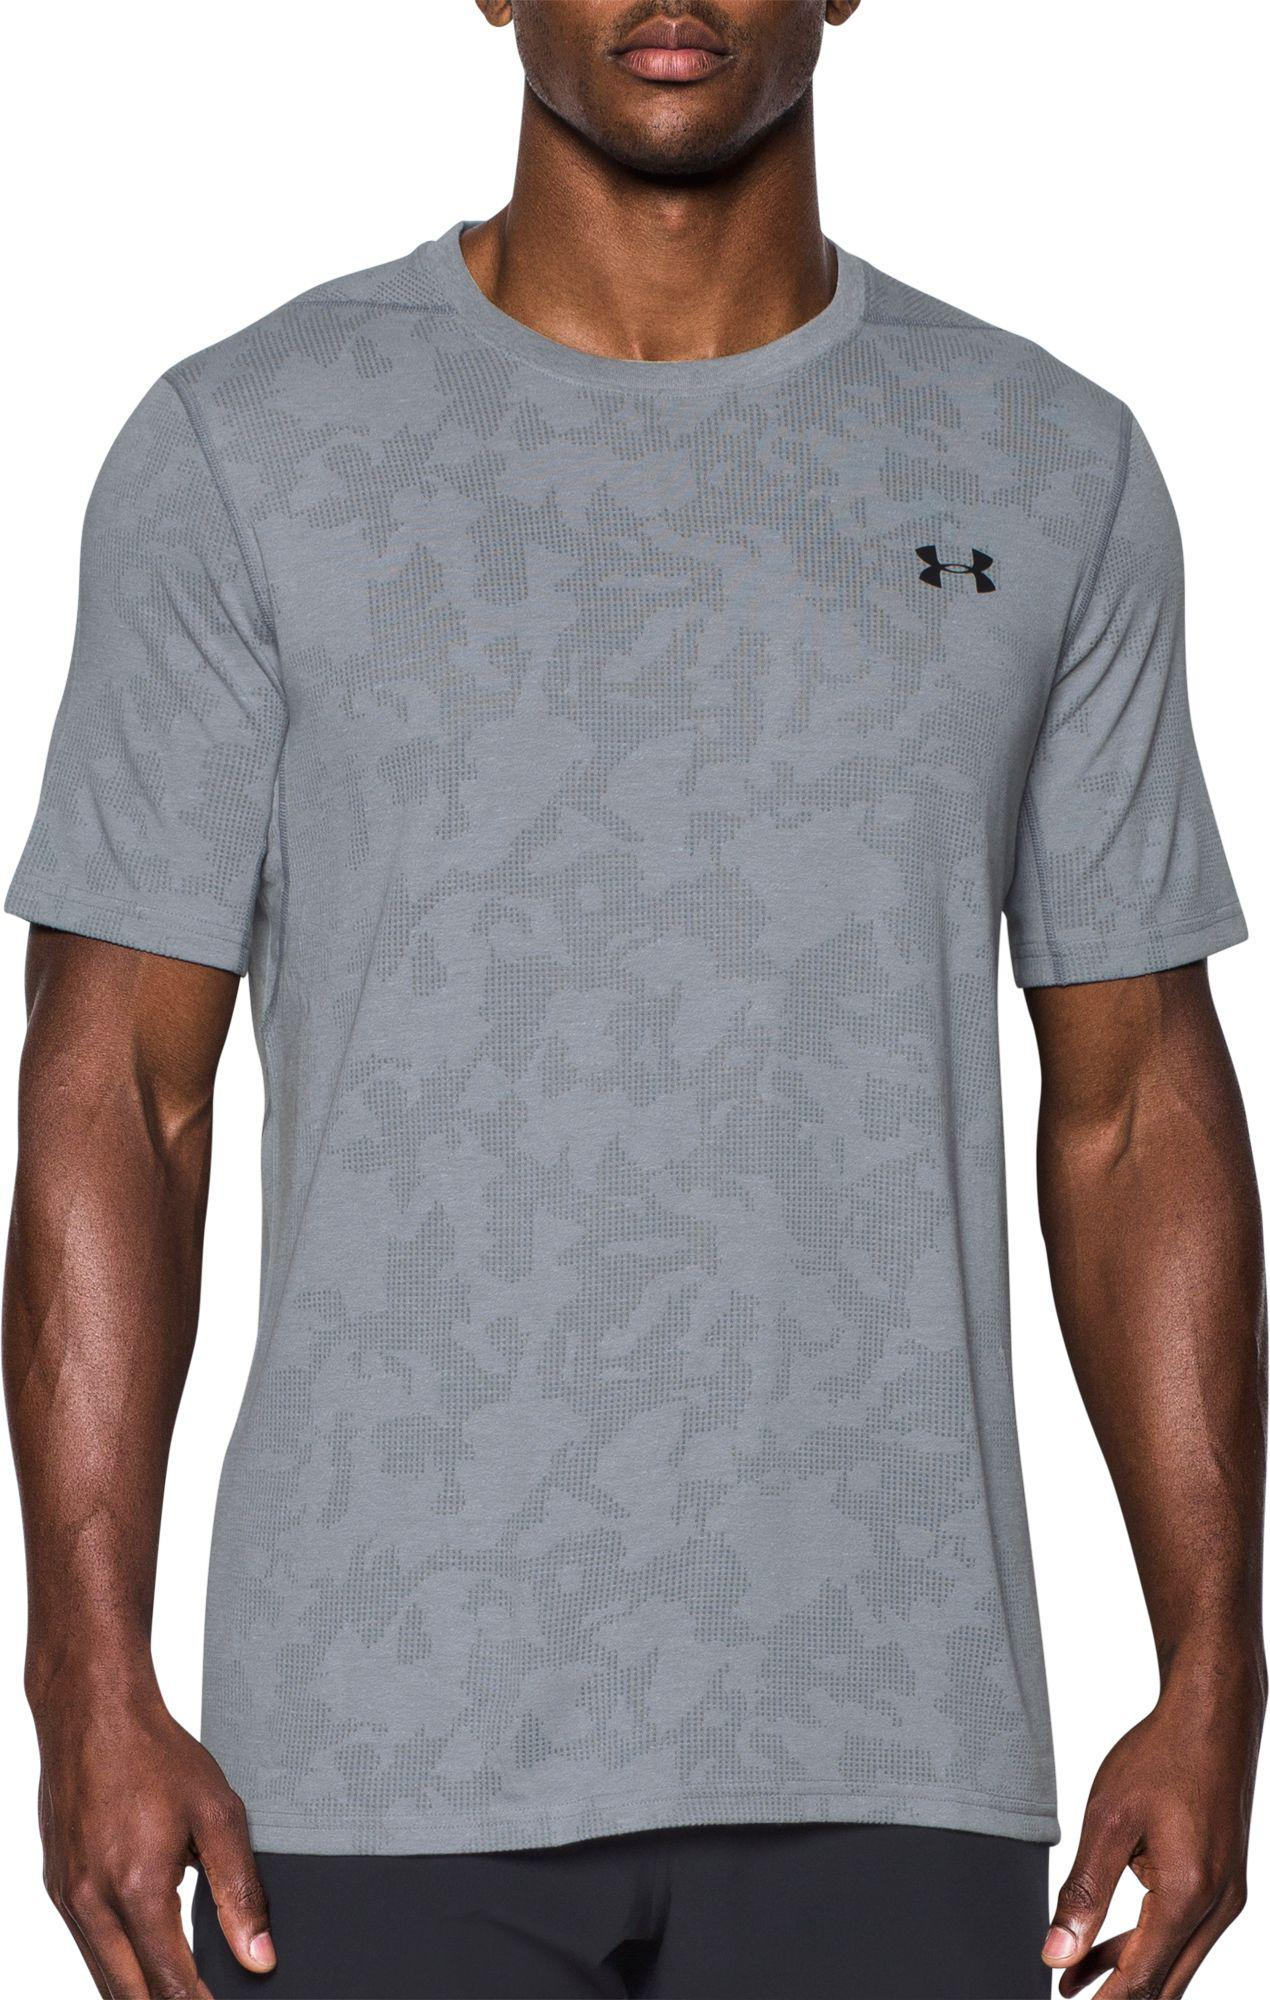 a125428e111 Under Armour Threadborne Elite Fitted T-shirt in Gray for Men - Lyst